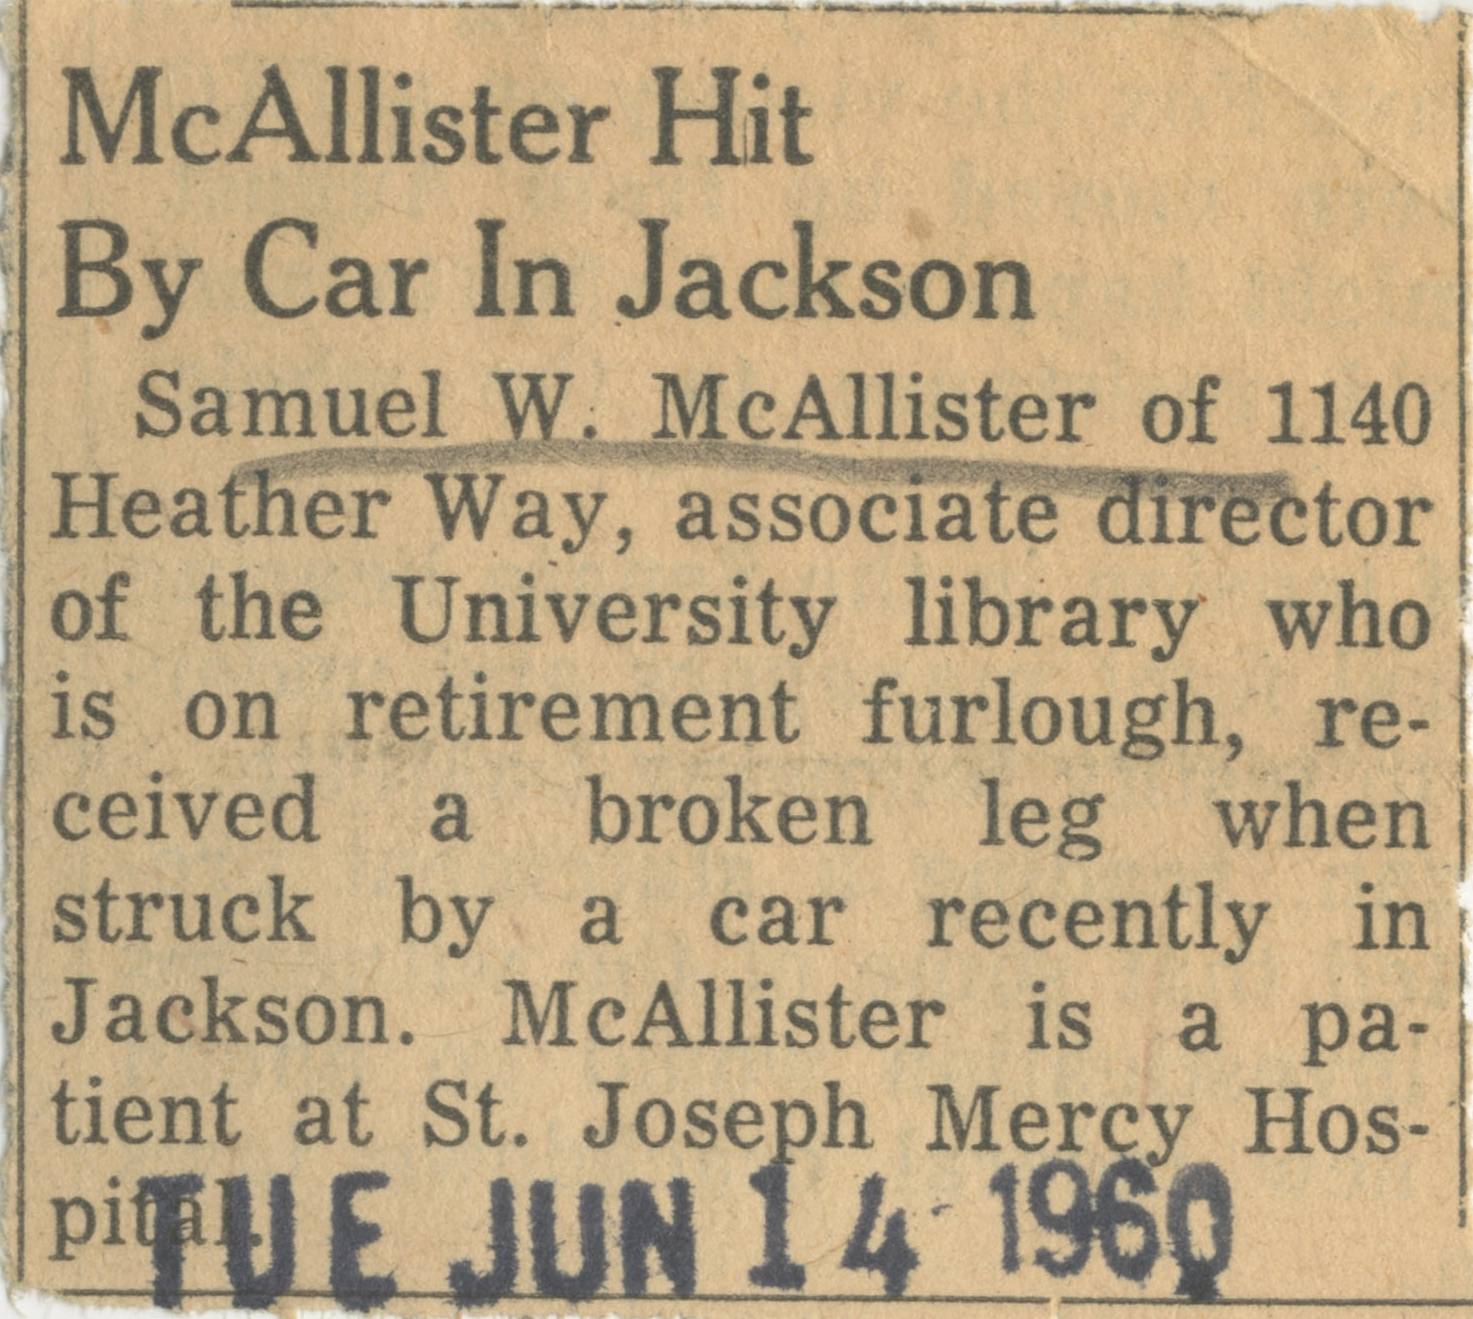 McAllister Hit By Car In Jackson image